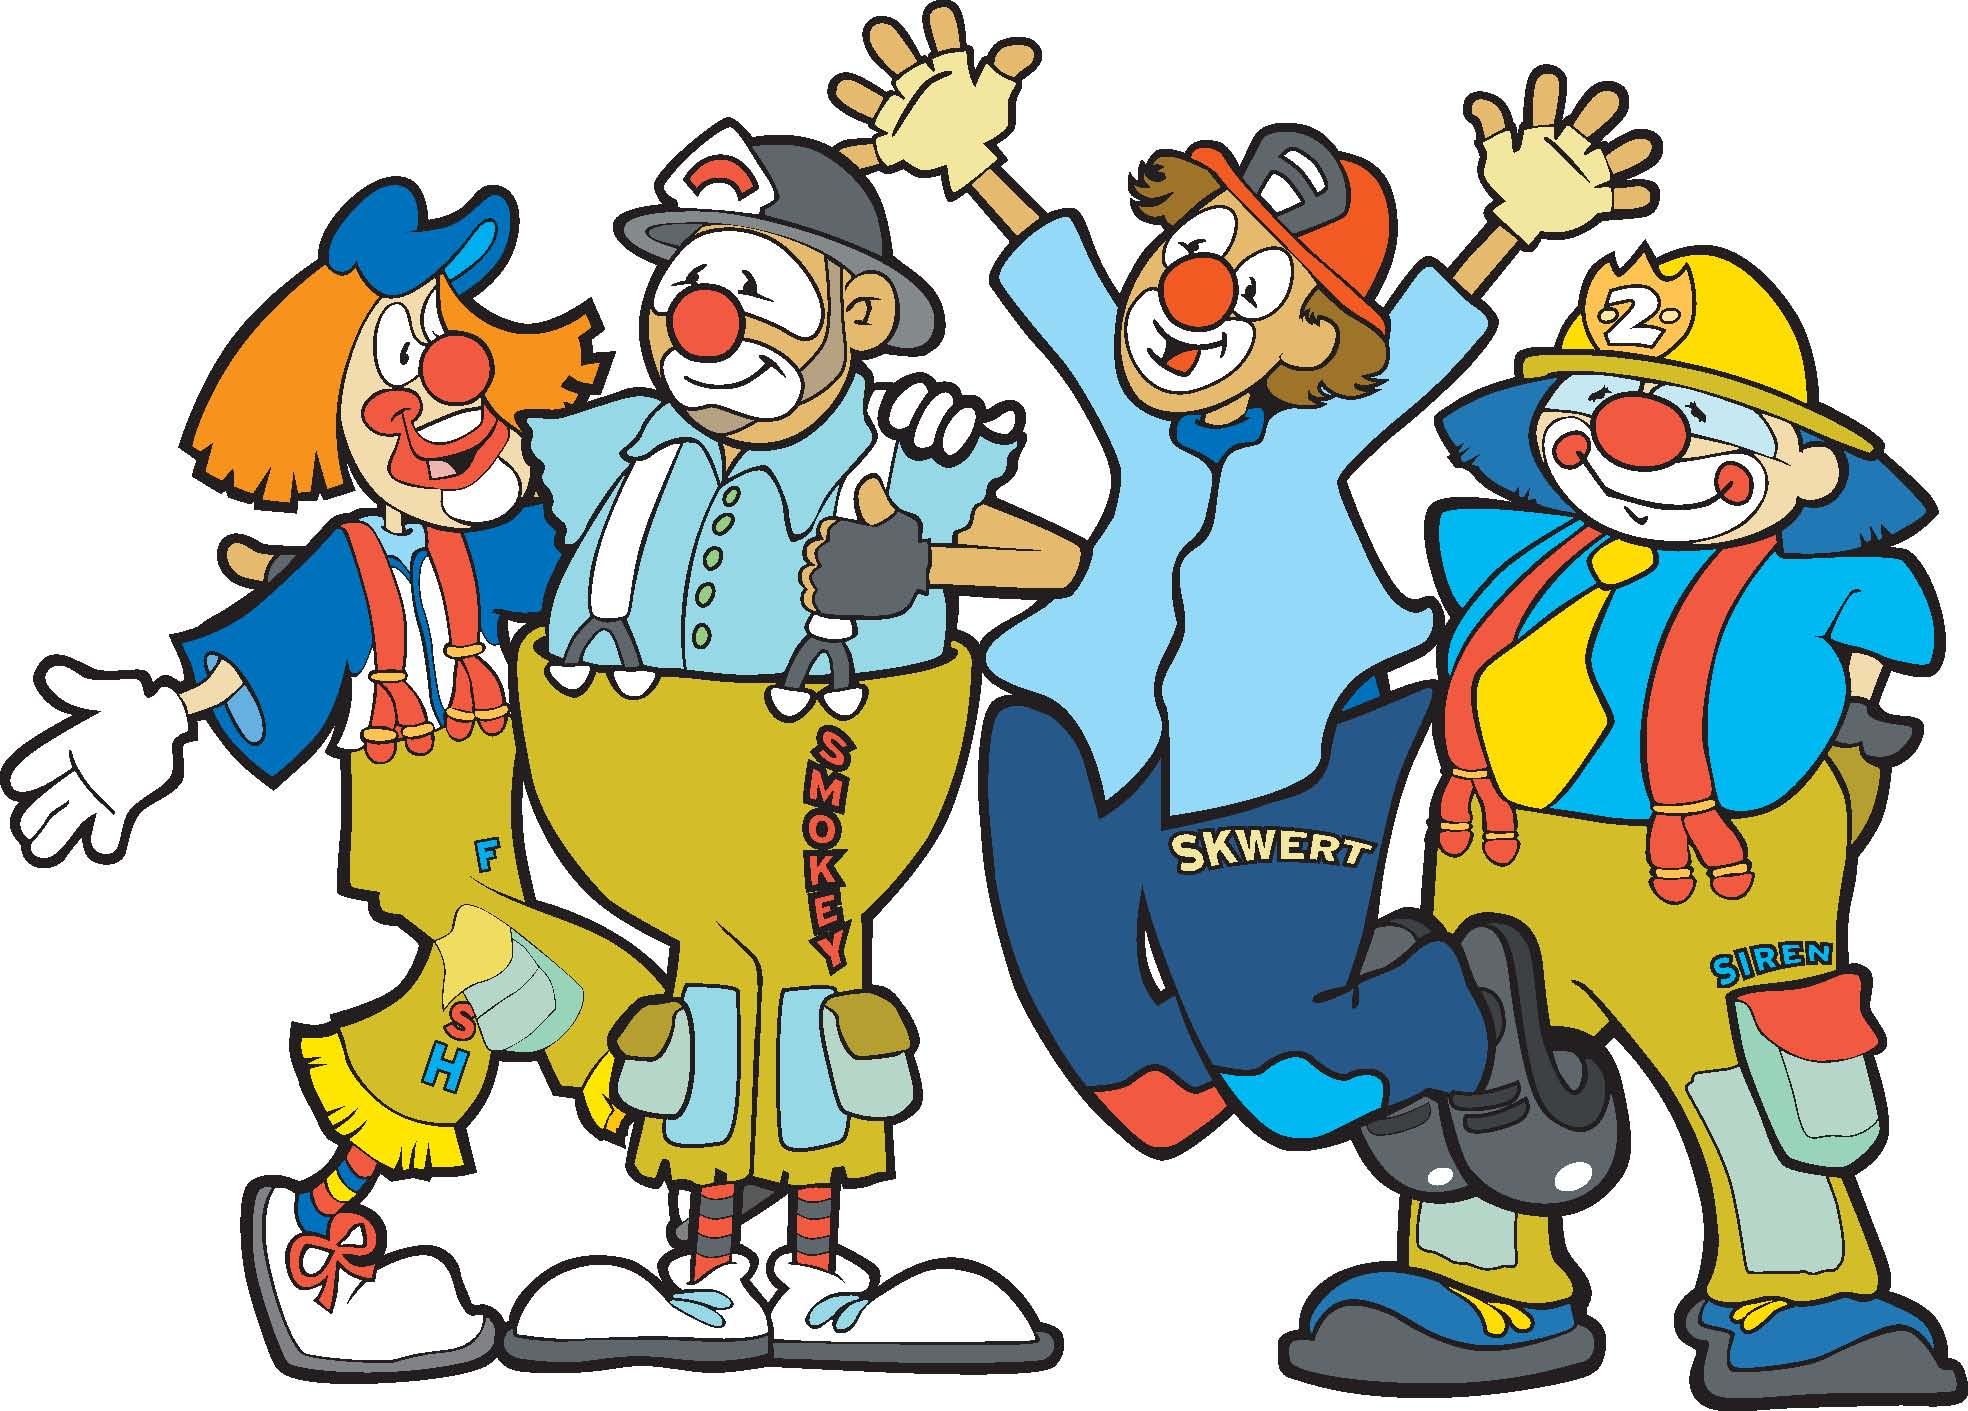 Funny Group Clown Mascot